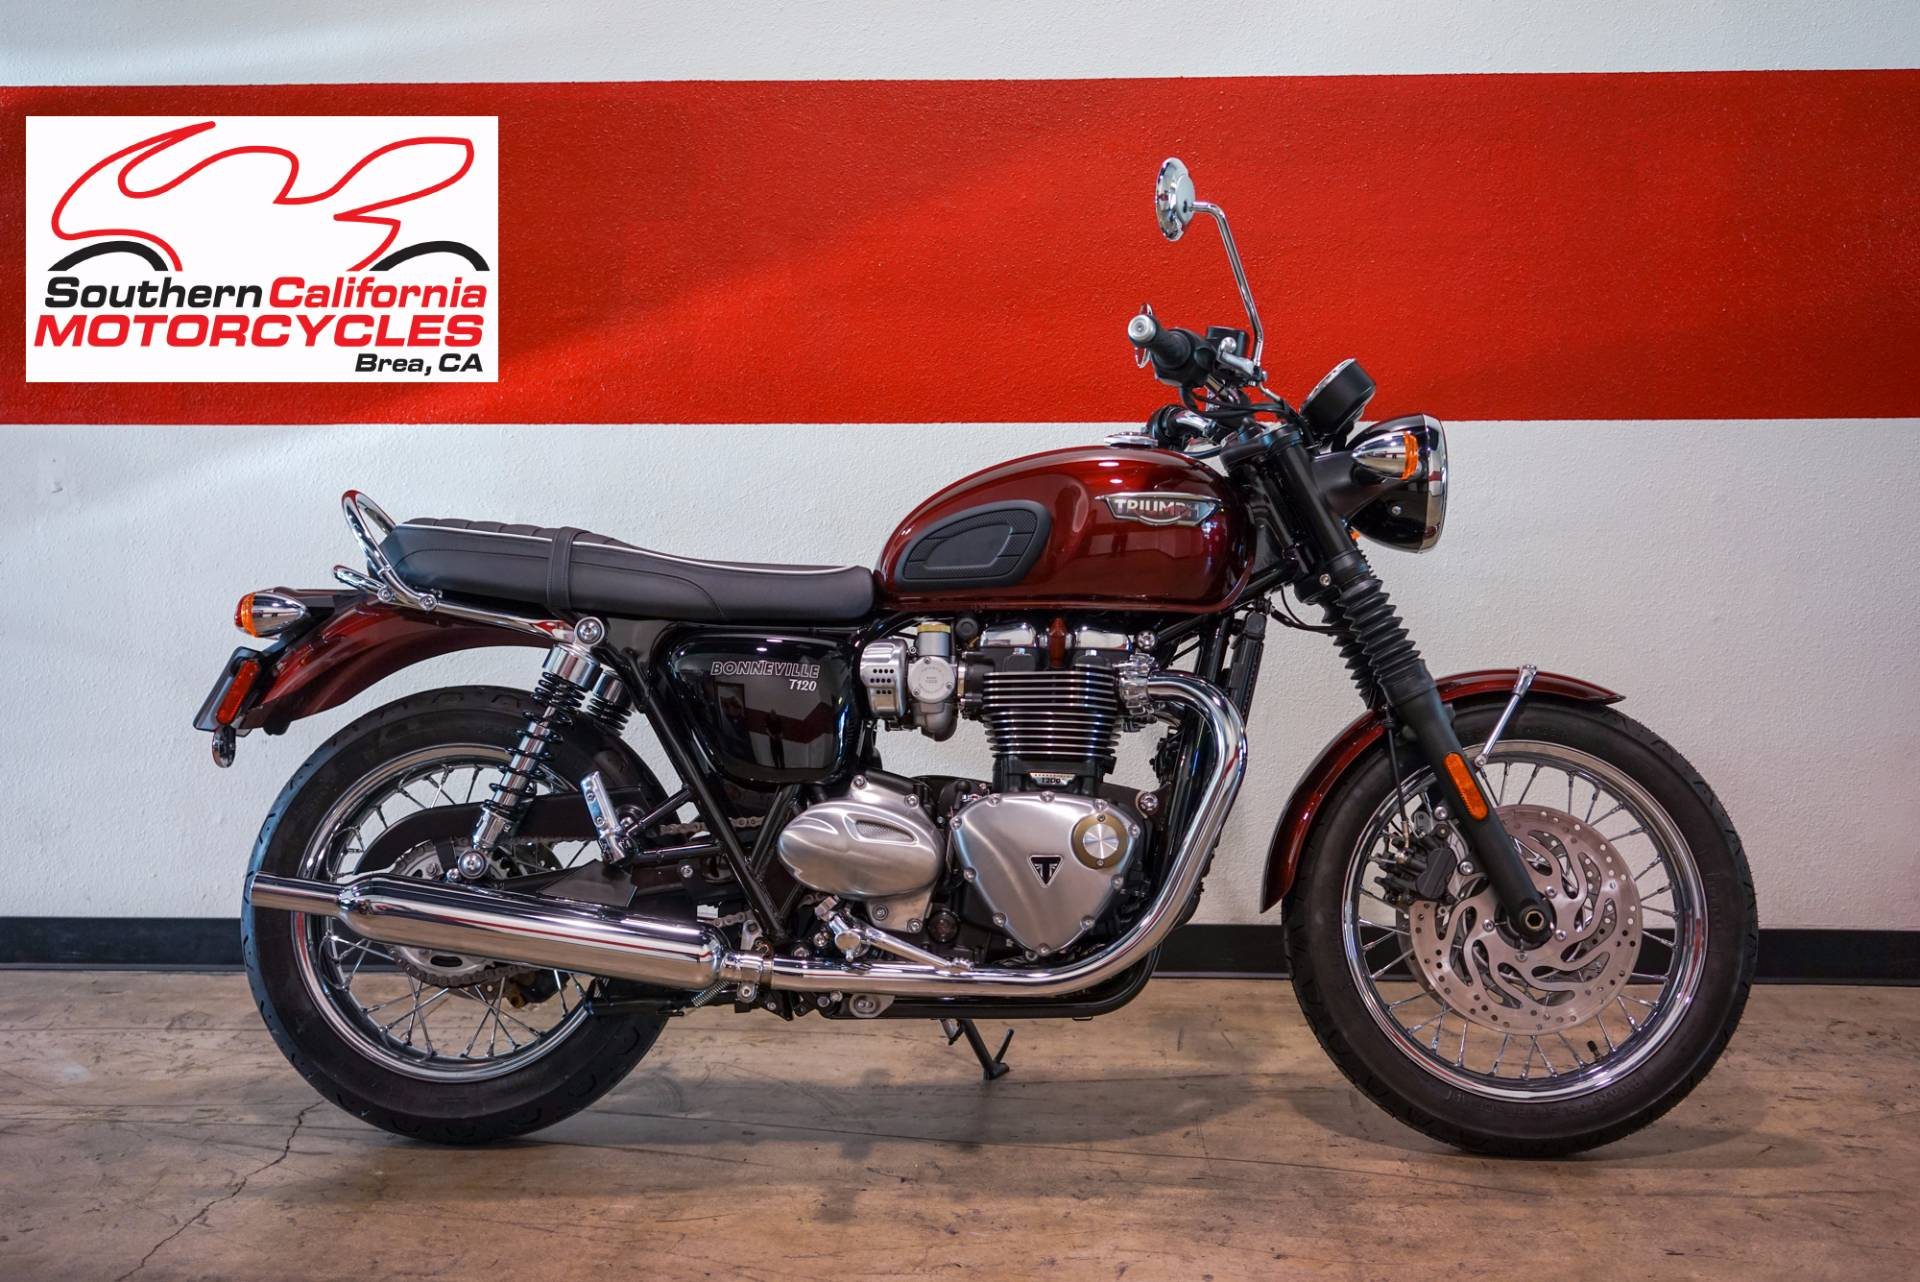 Inspired by the legendary 1959 Bonneville and styled to incorporate the originals iconic features